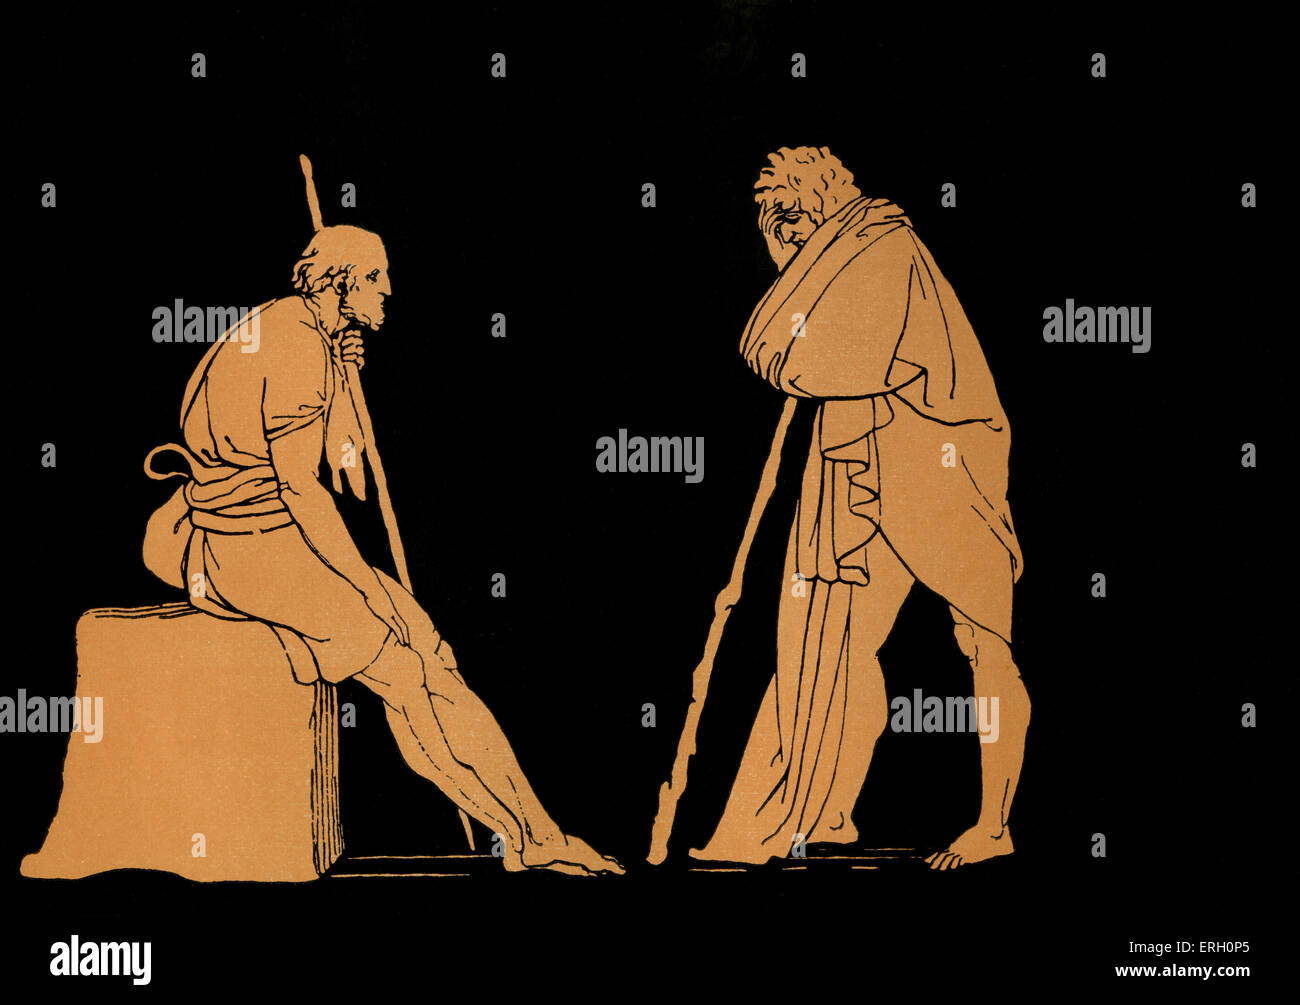 the journey of odysseus and telemachos in homers the odyssey In the odyssey, homer created a parallel for readers, between odysseus and telemachos, father and son telemachos was supposedly learning the role of his father, the king of ithaca, to follow in the footsteps.